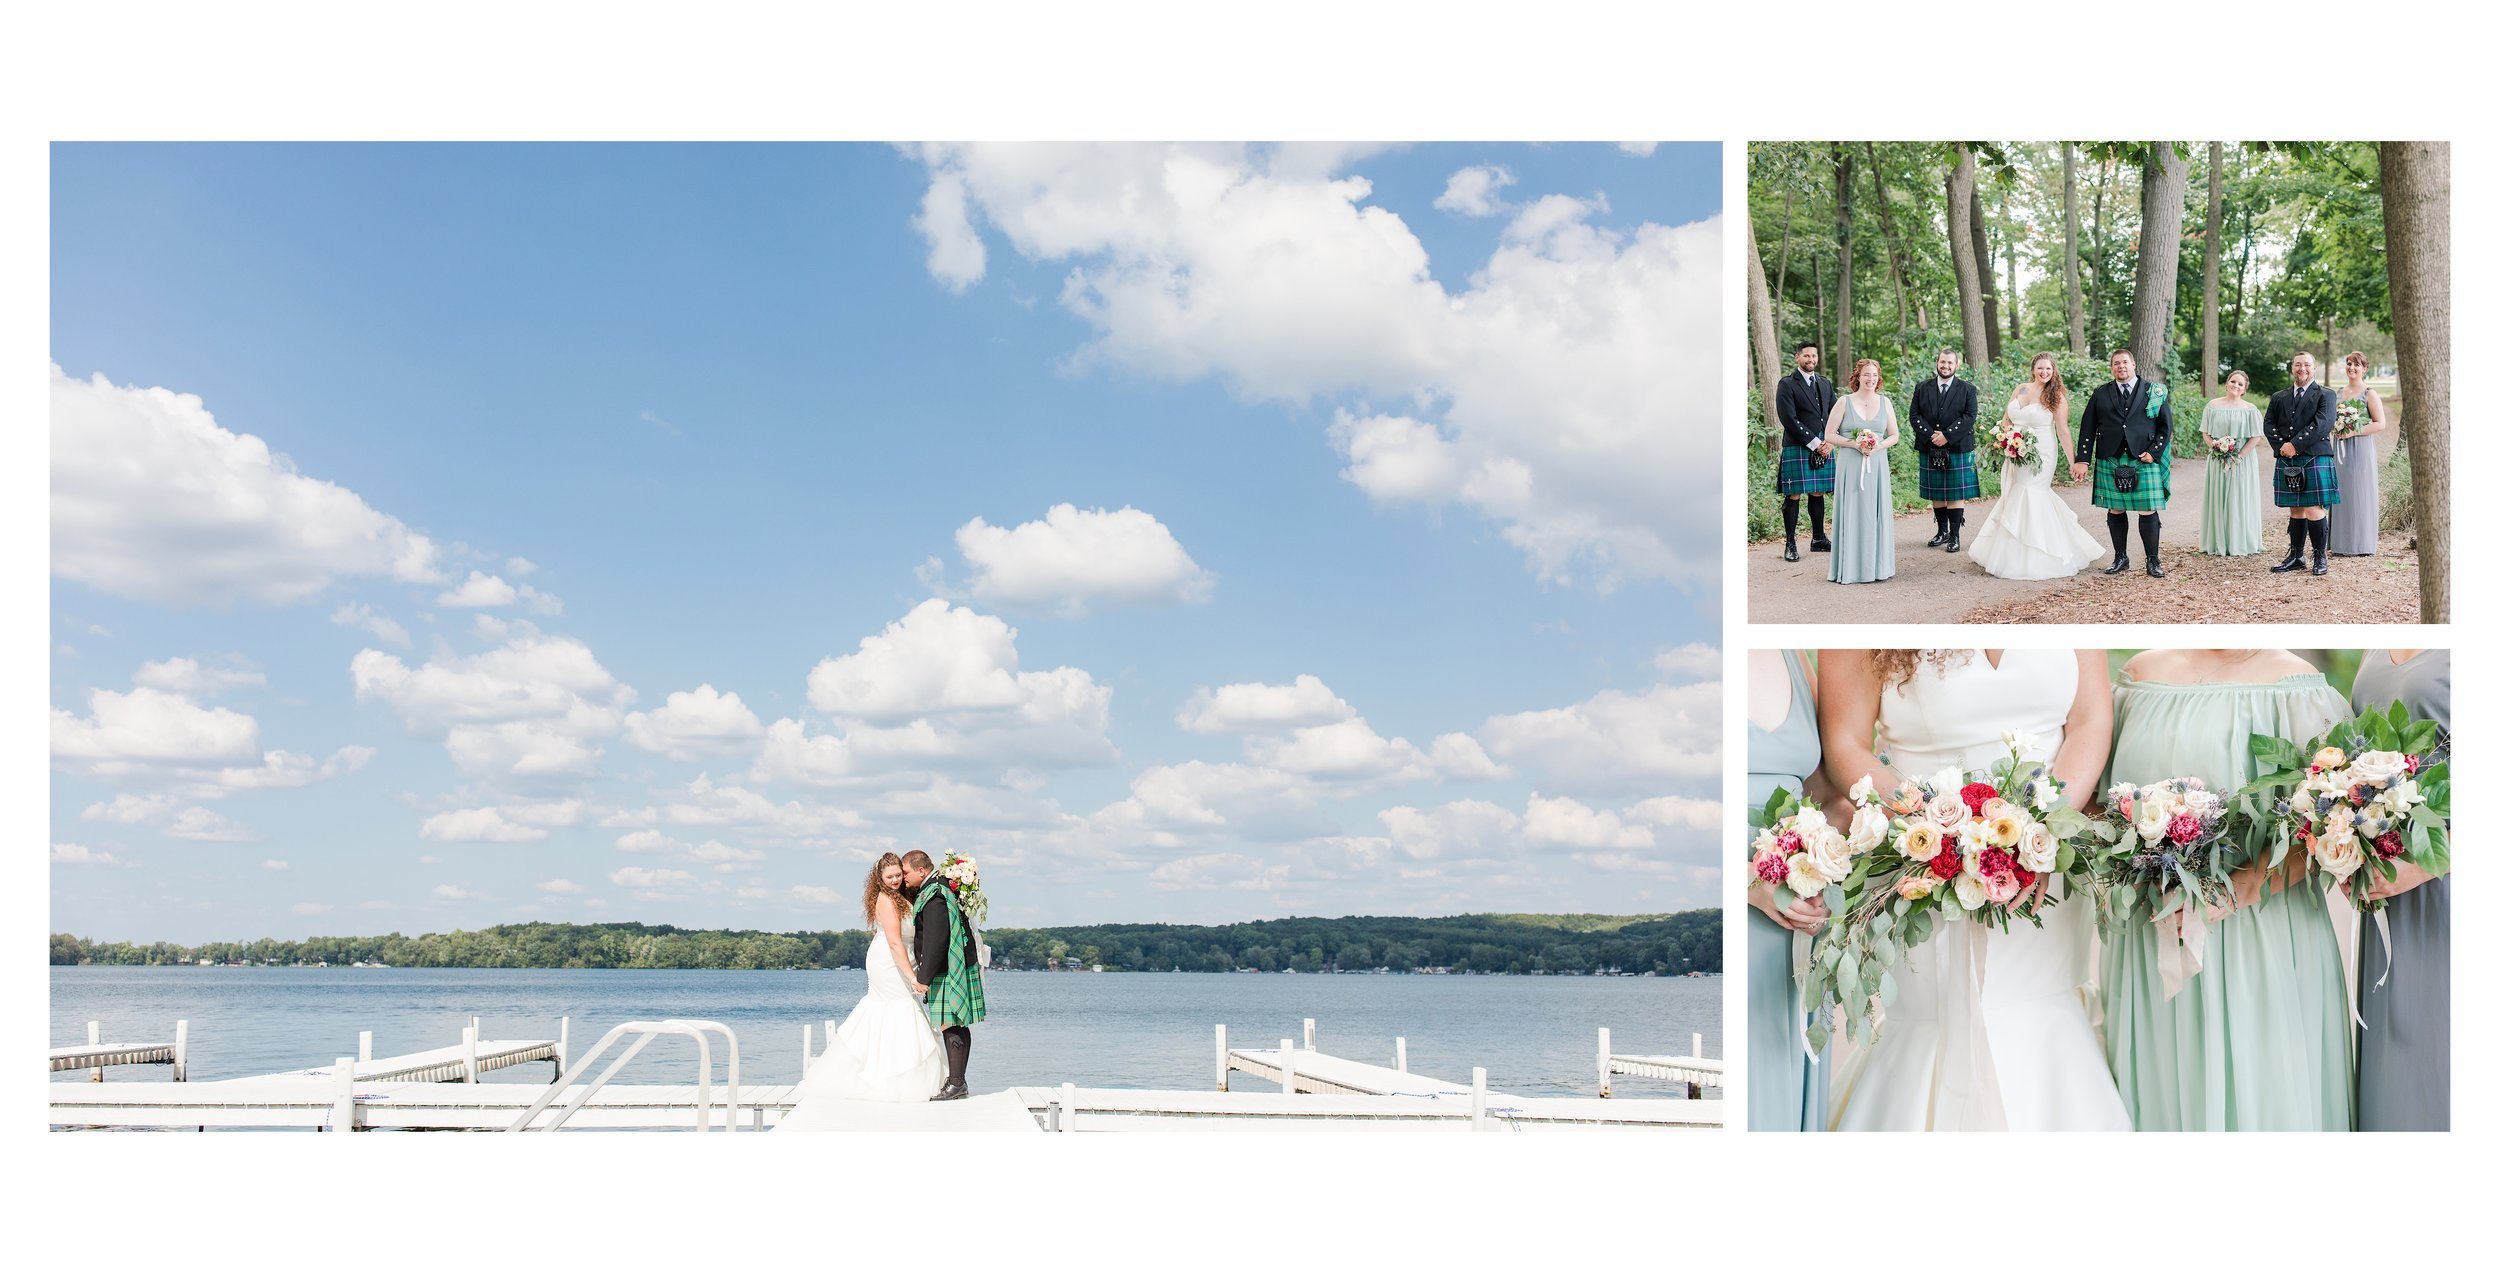 Our_Wedding_Album_12x12_-_30_pages_14.jpg